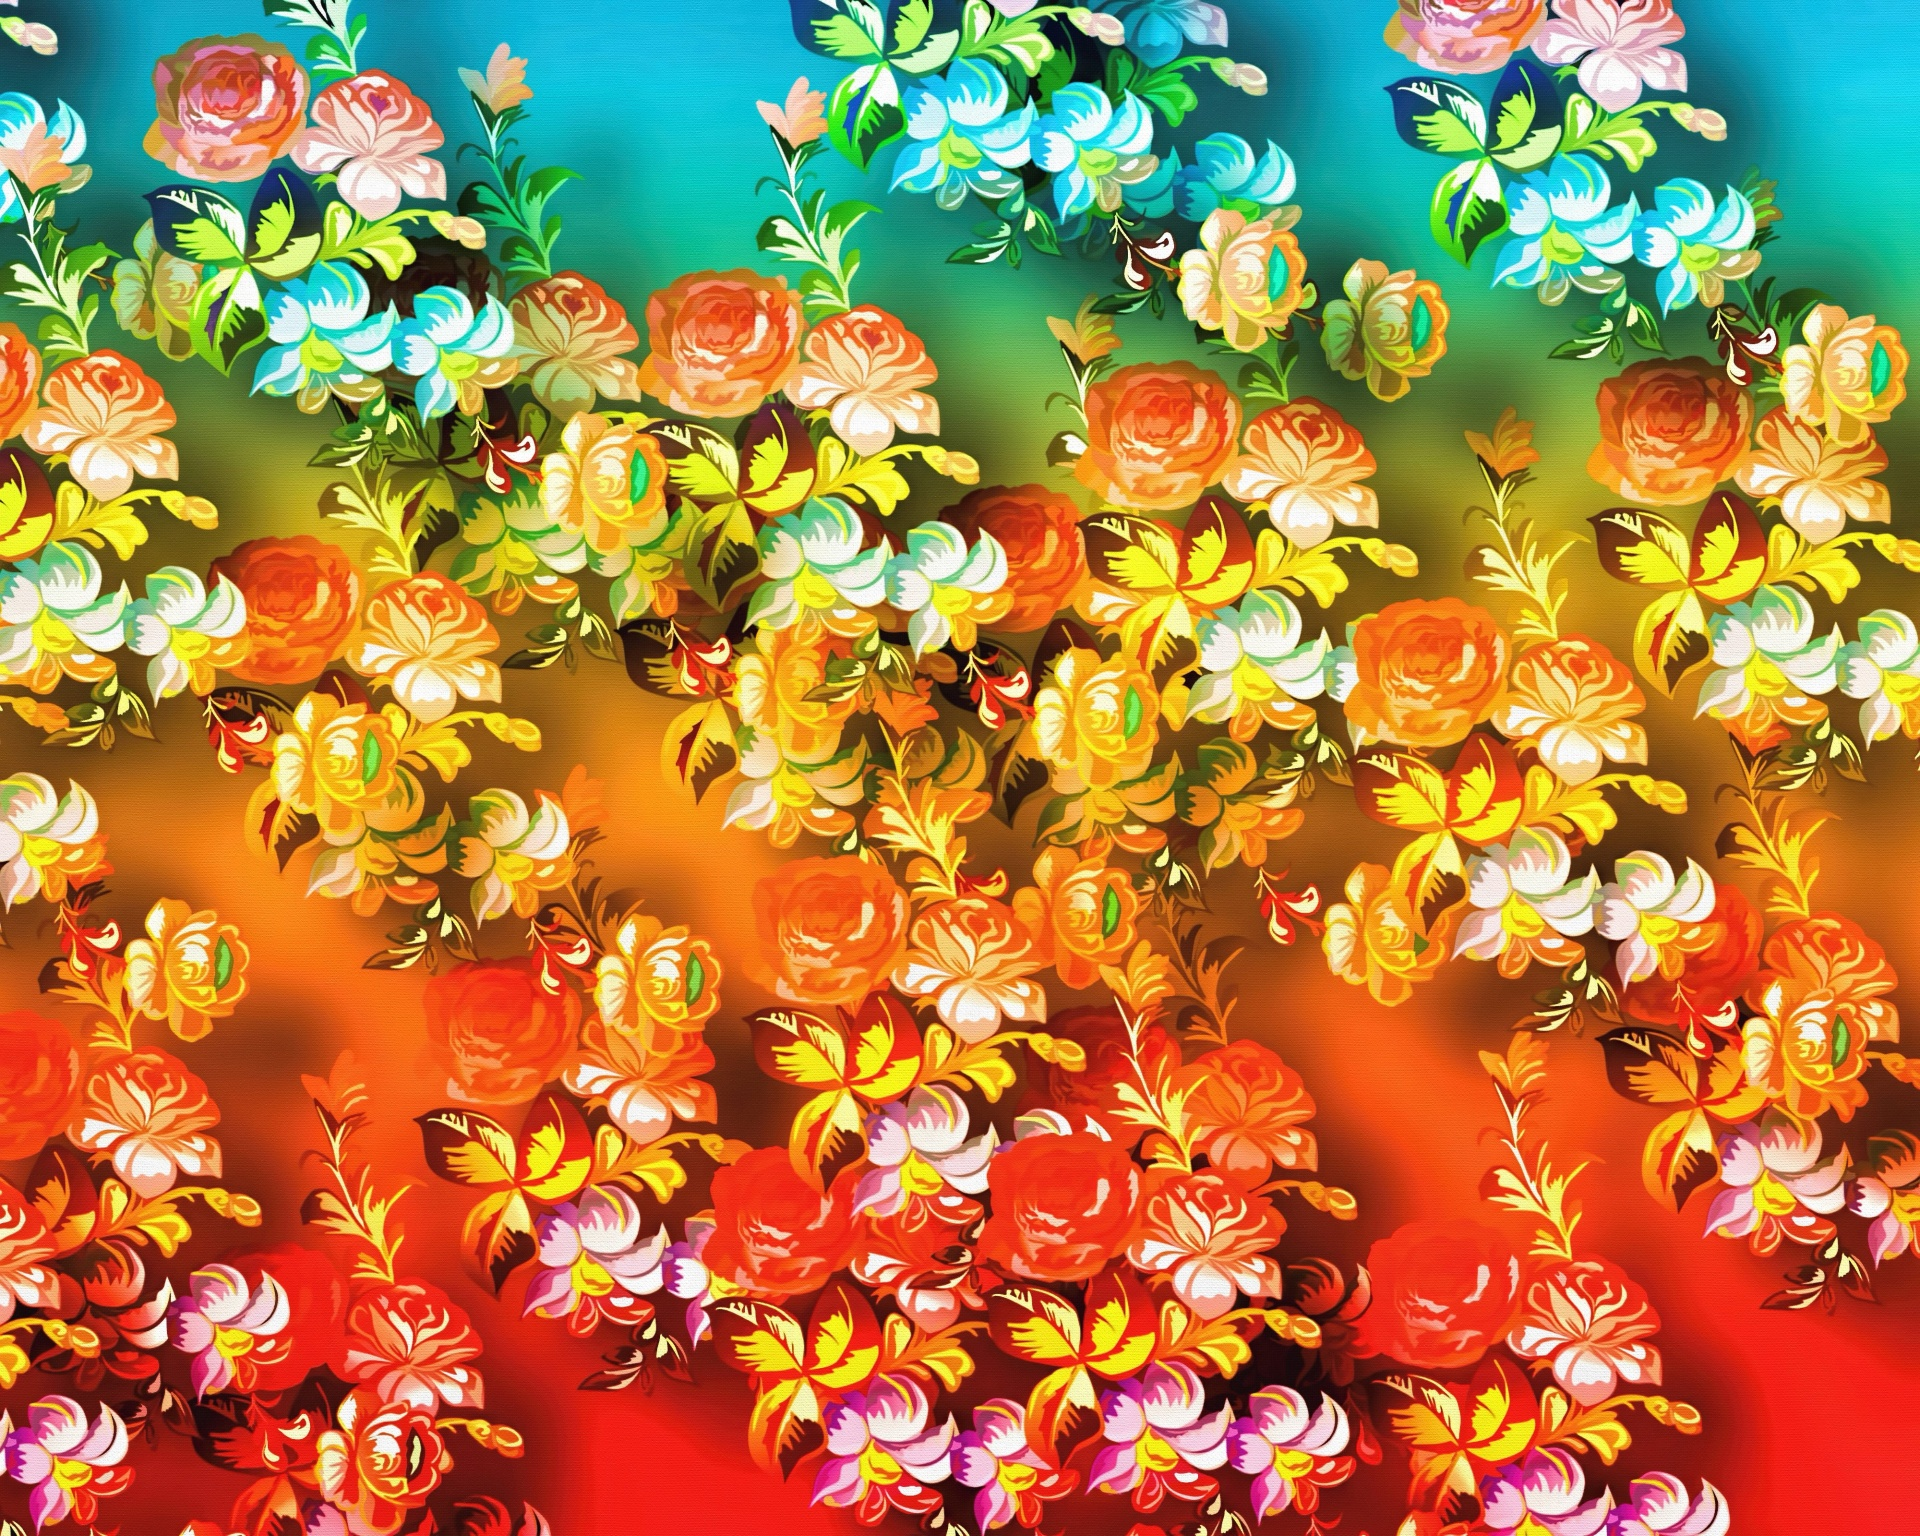 Shutterstock Hd Wallpapers Flower Background Free Stock Photo Public Domain Pictures